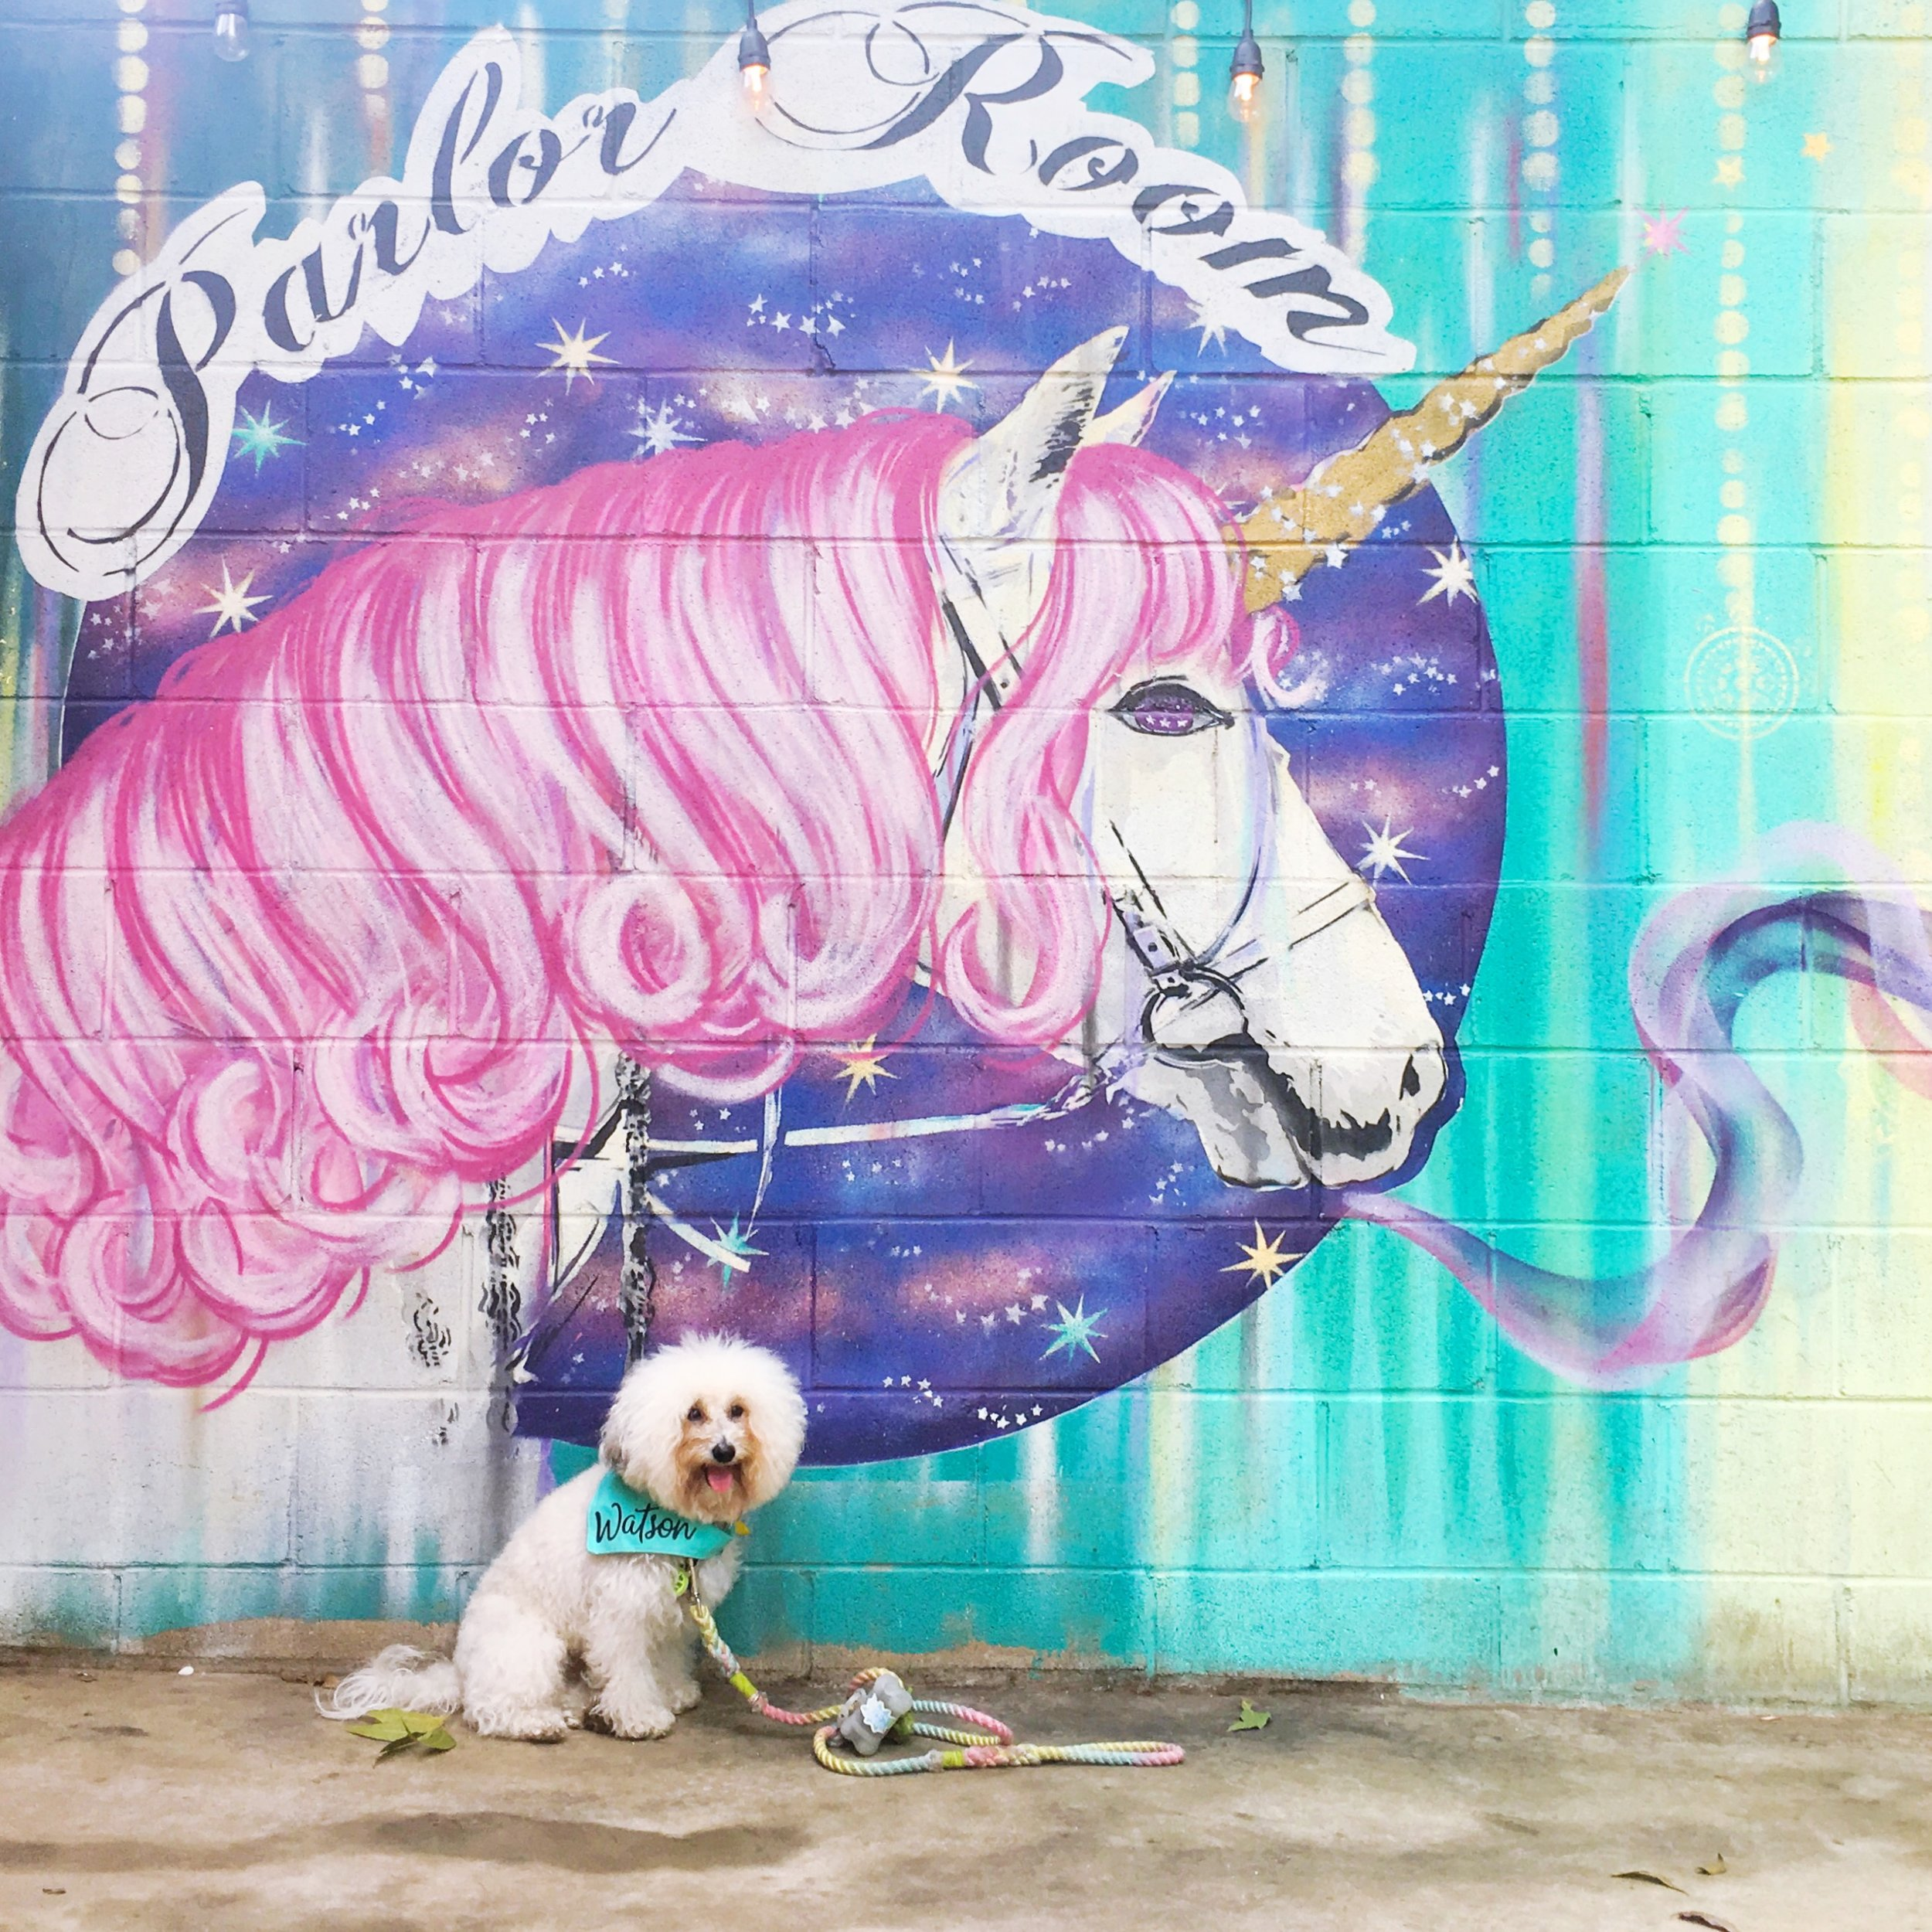 Watson by the Unicorn Mural at the dog-friendly bar Parlor Room on Rainey St. Austin, TX | Watson & Walls